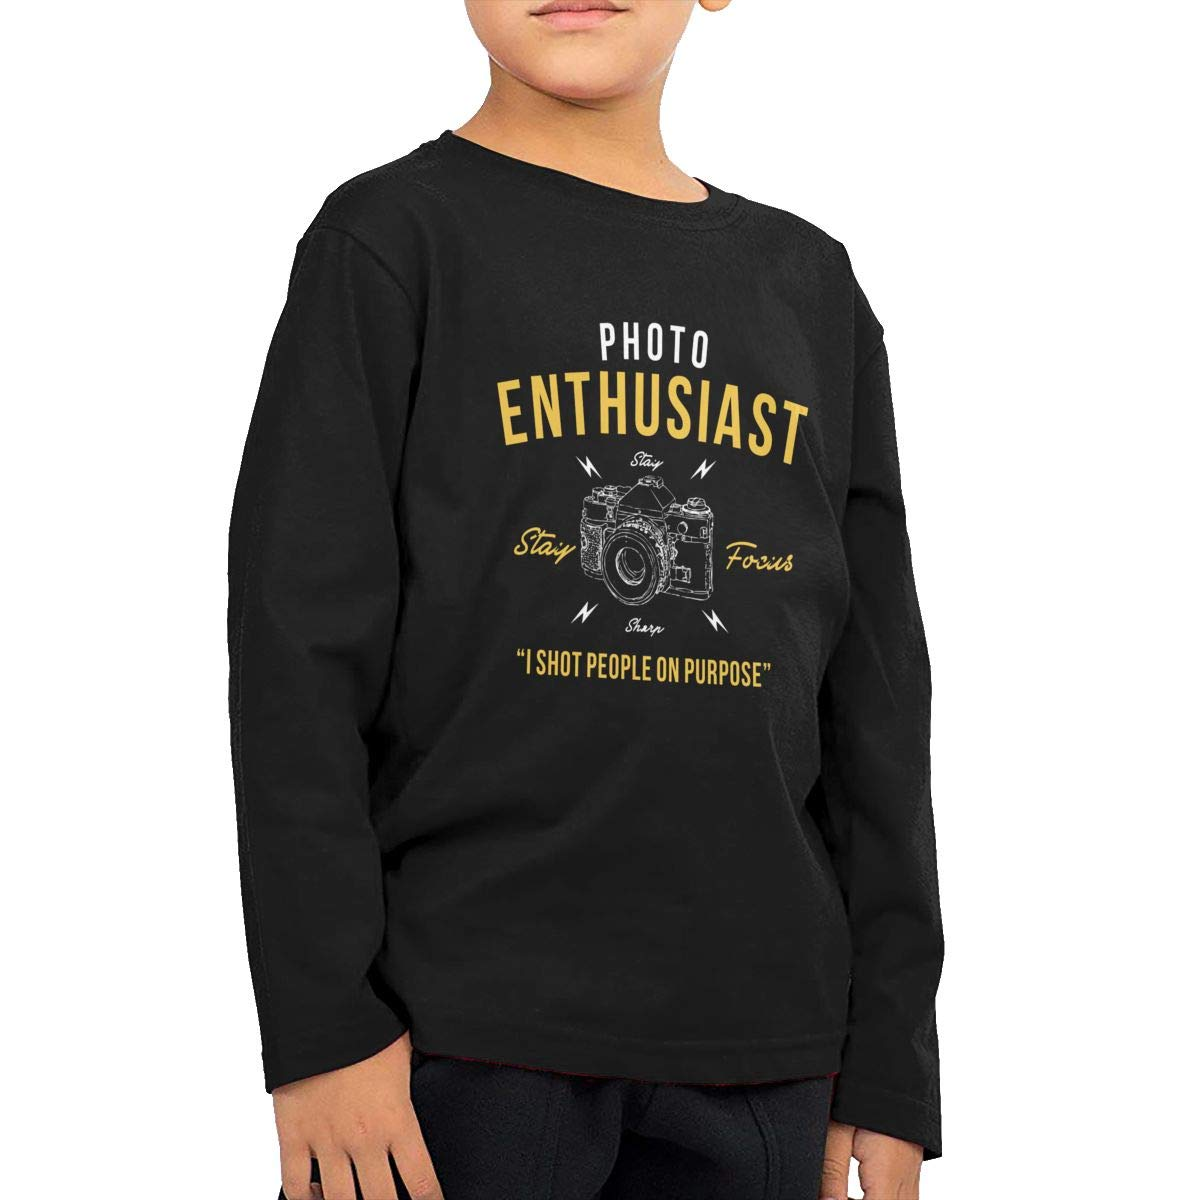 Photo Enthusiast Childrens Long Sleeve T-Shirt Boys Girls Cotton Tee Tops